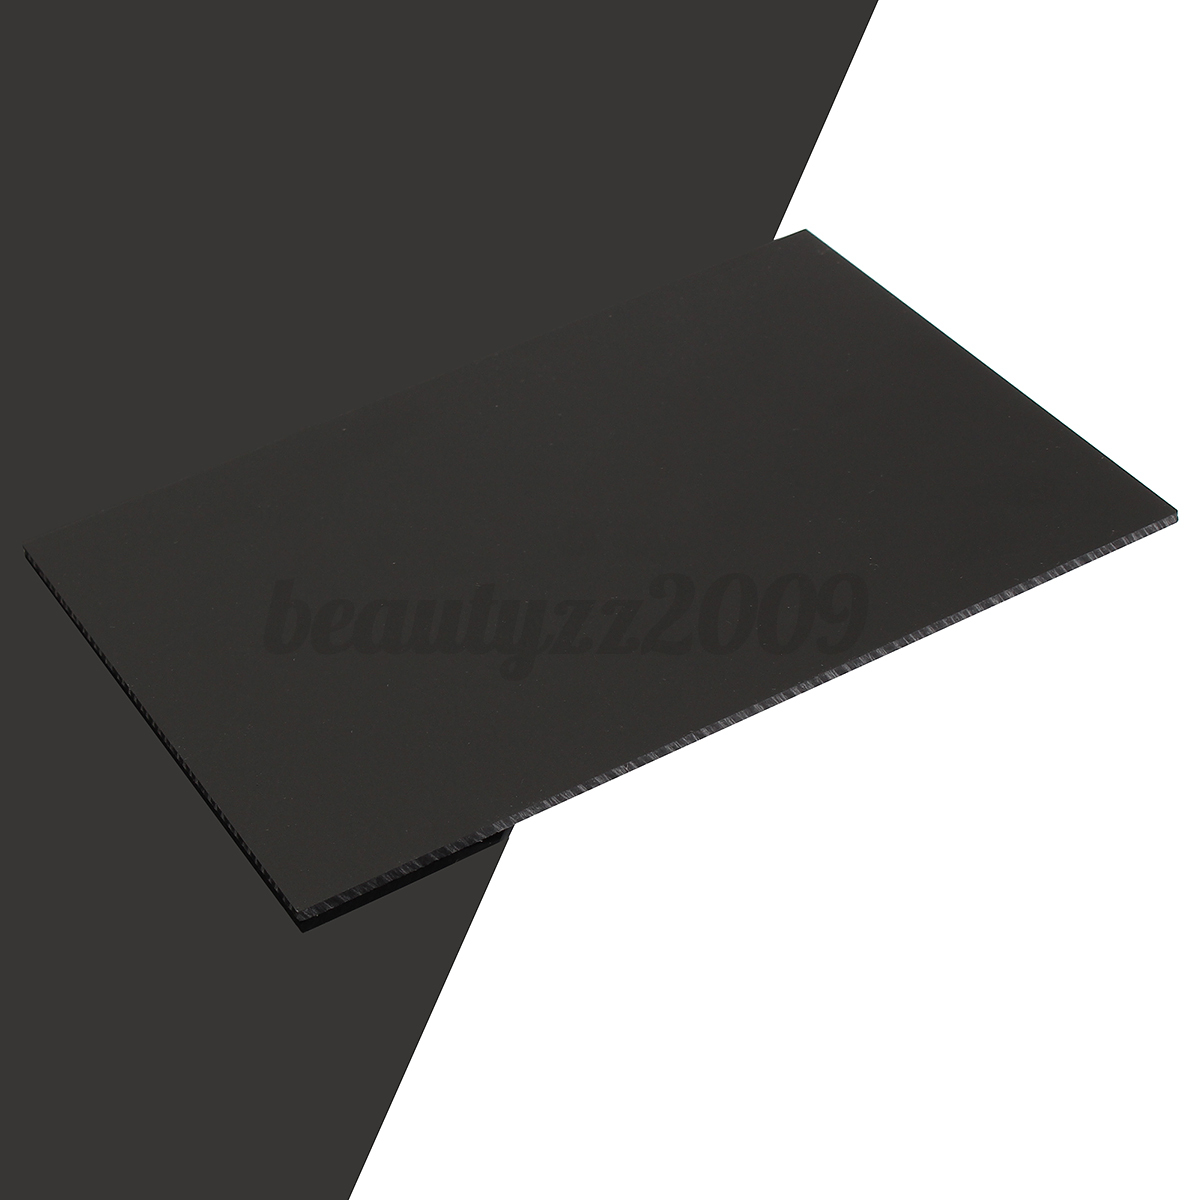 new 3mm a5 148x210mm acrylic perspex sheet cut to size. Black Bedroom Furniture Sets. Home Design Ideas